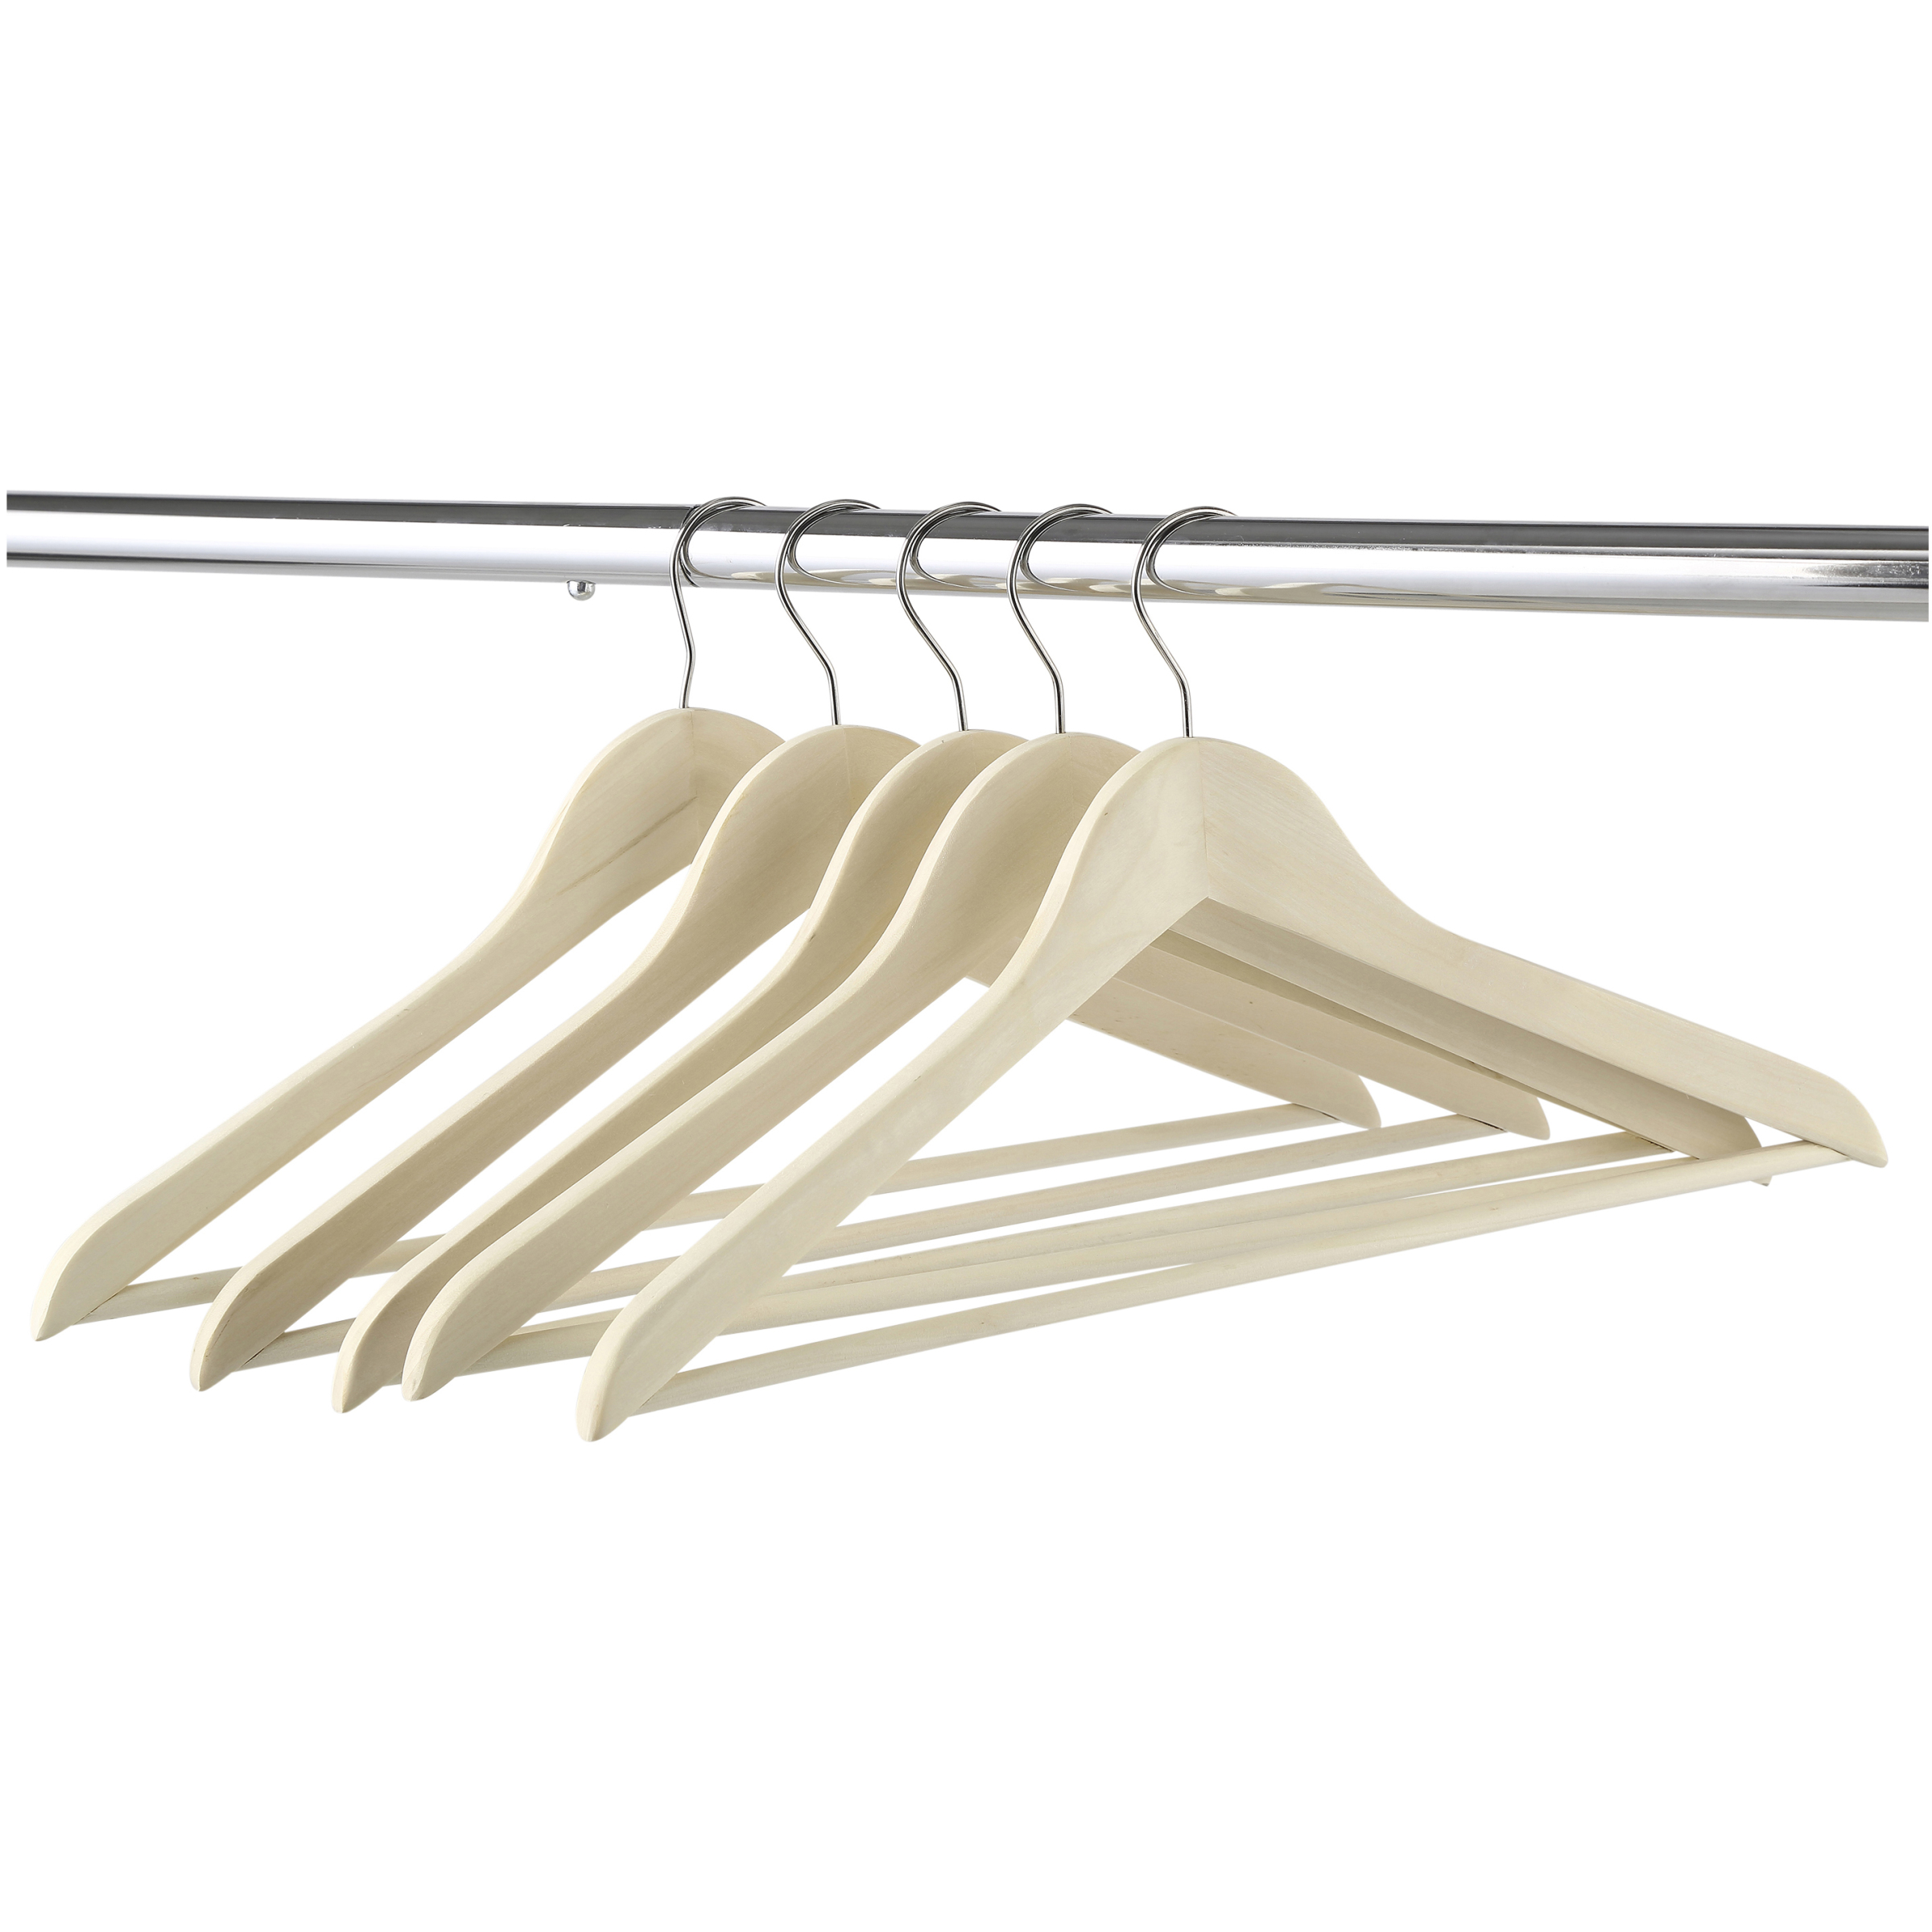 Mainstays Wood Suit Hangers, 5-Pack, Durable Construction